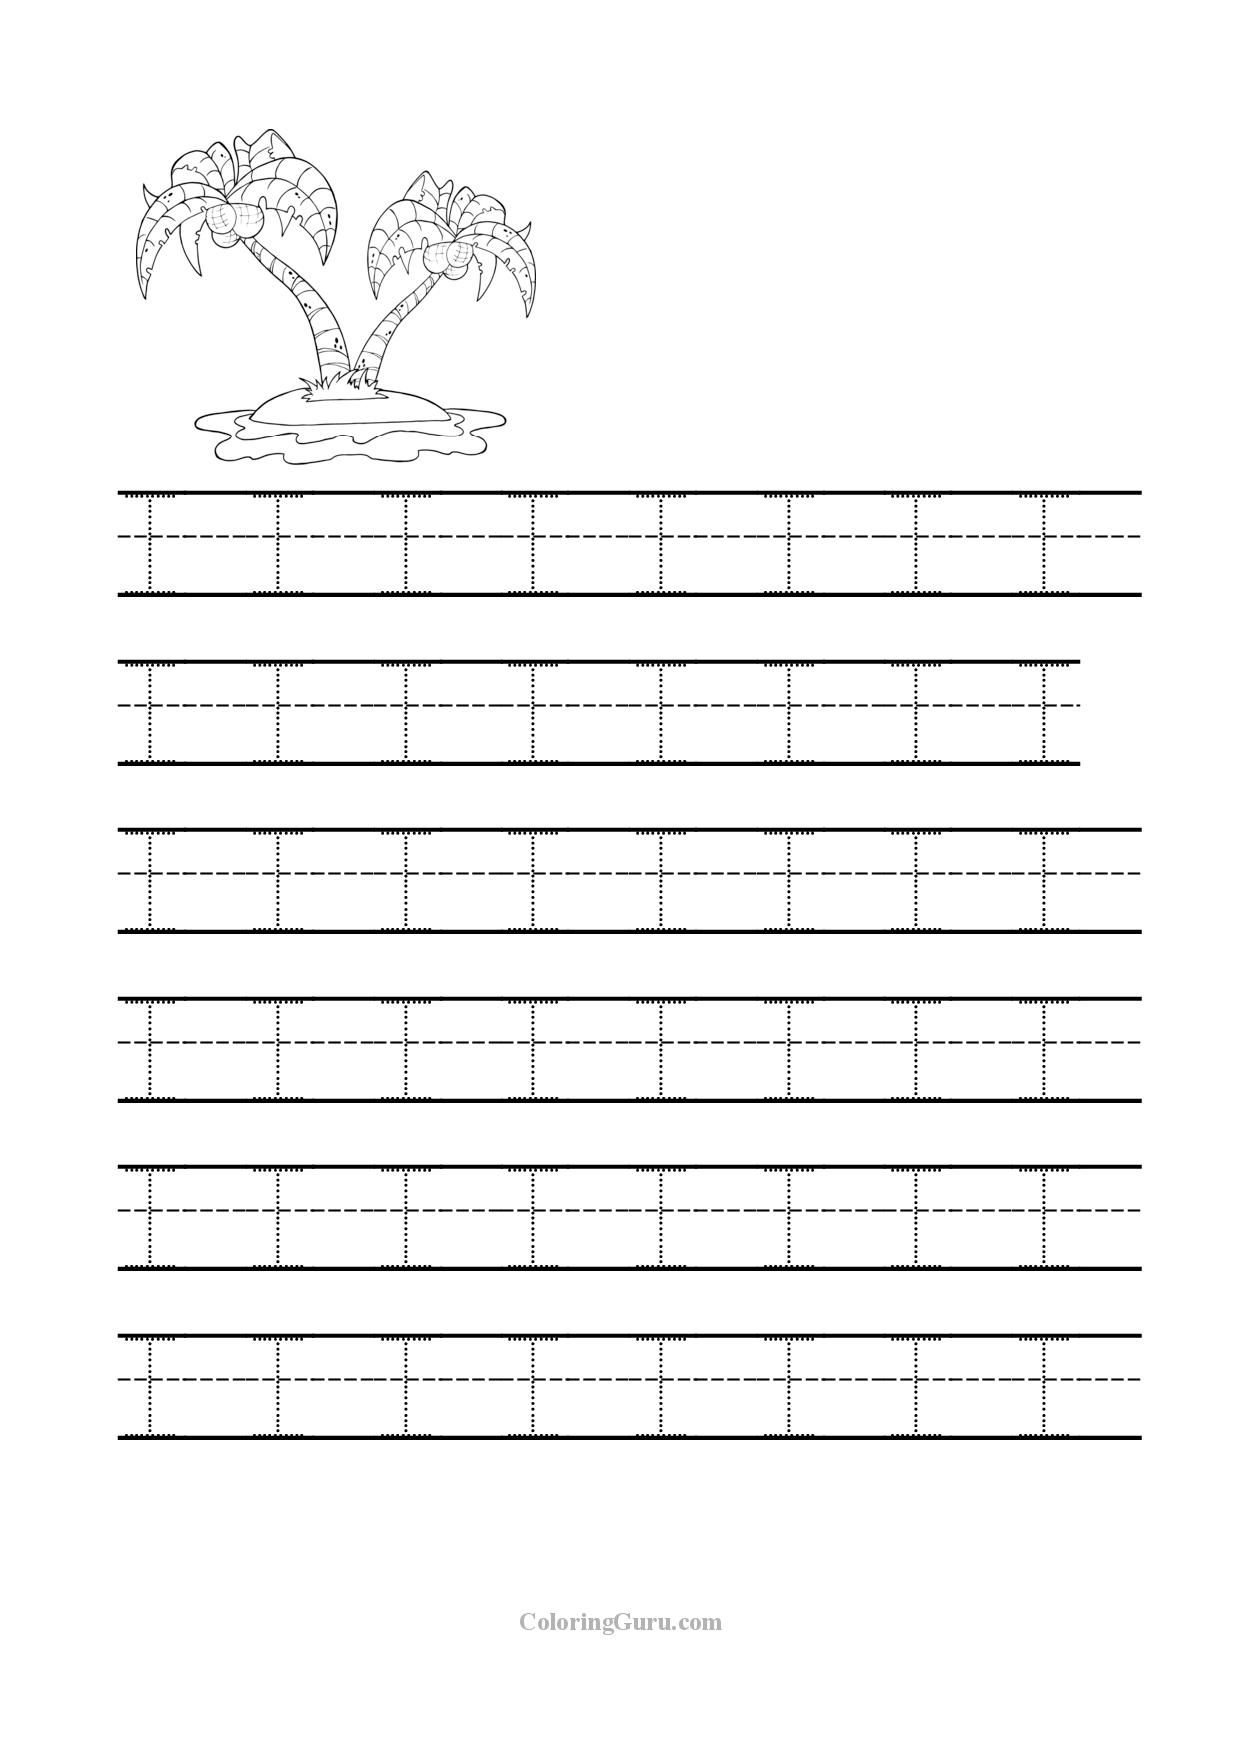 Worksheet Letter I Worksheets Preschool free printable tracing letter i worksheets for preschool preschool